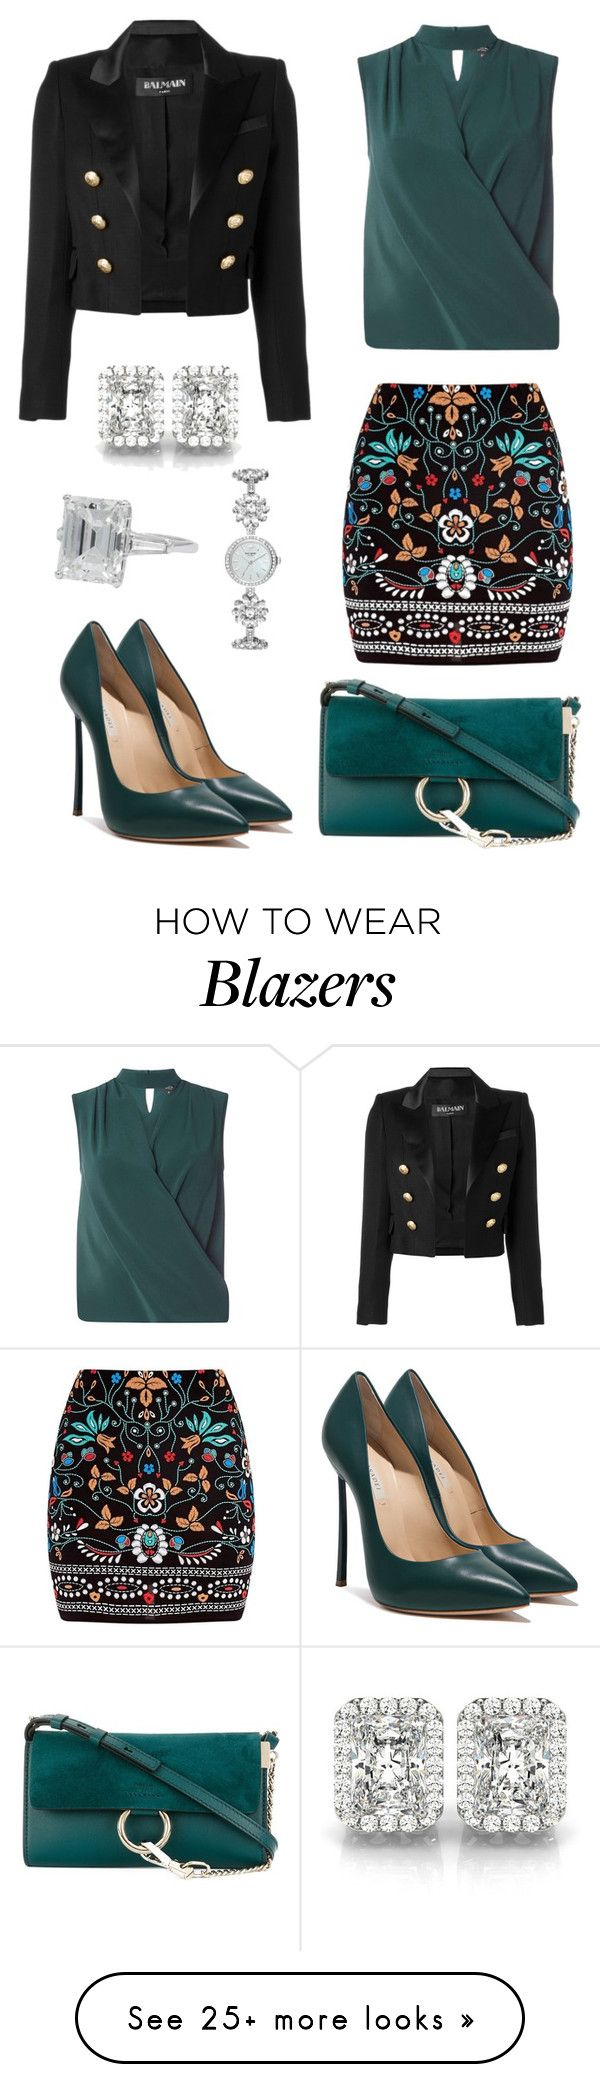 """Untitled #868"" by rubysparks90 on Polyvore featuring Chloé, Dorothy Perkins, Marni, Balmain, Allurez and Kate Spade"